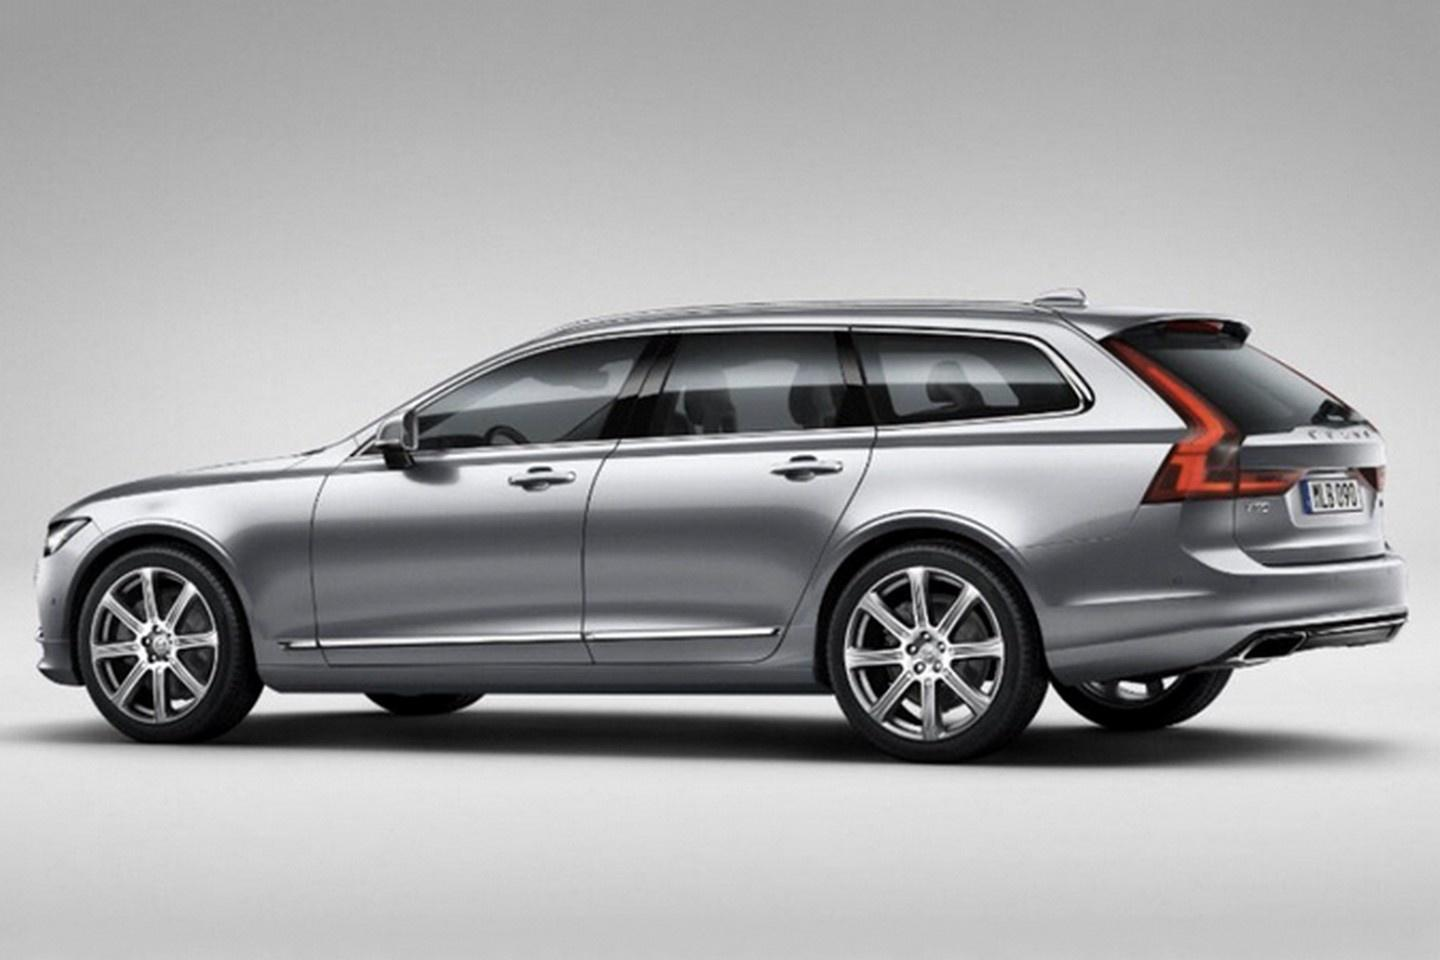 Volvo's head-turning V90 station wagon has been revealed prematurely by leaked images